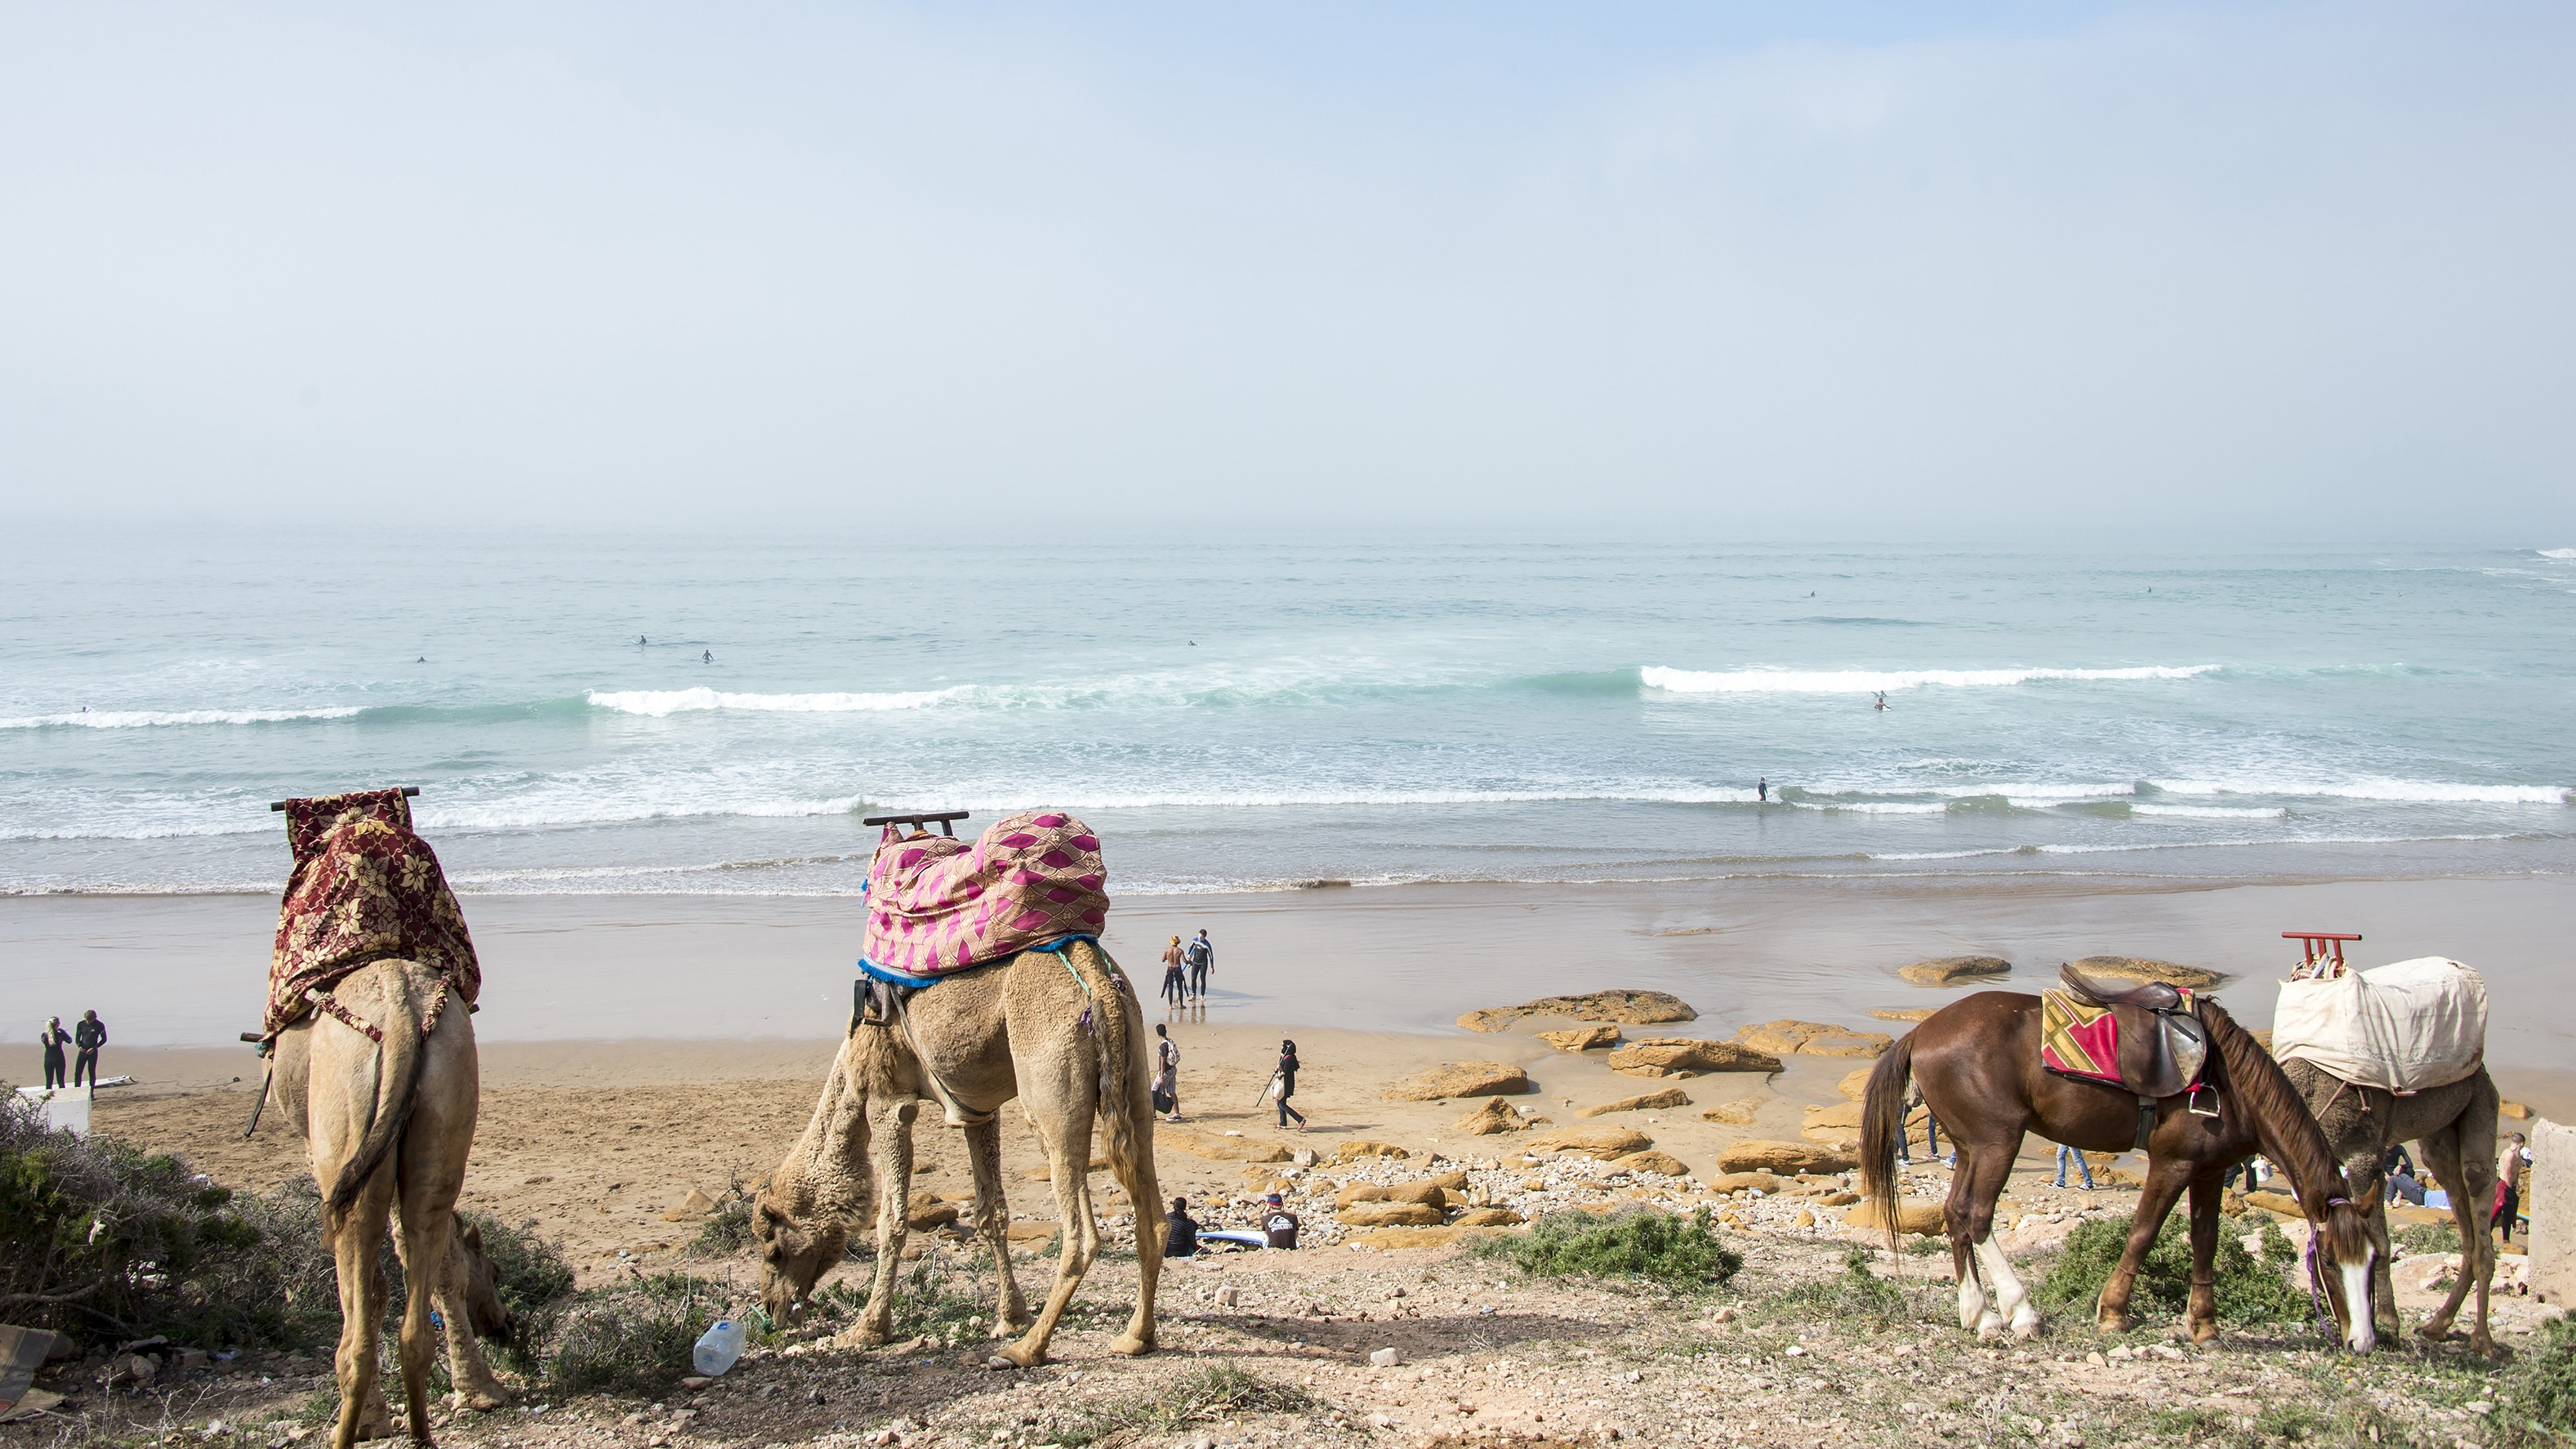 Locals, surfers, and camels mingle on a Taghazout beach.